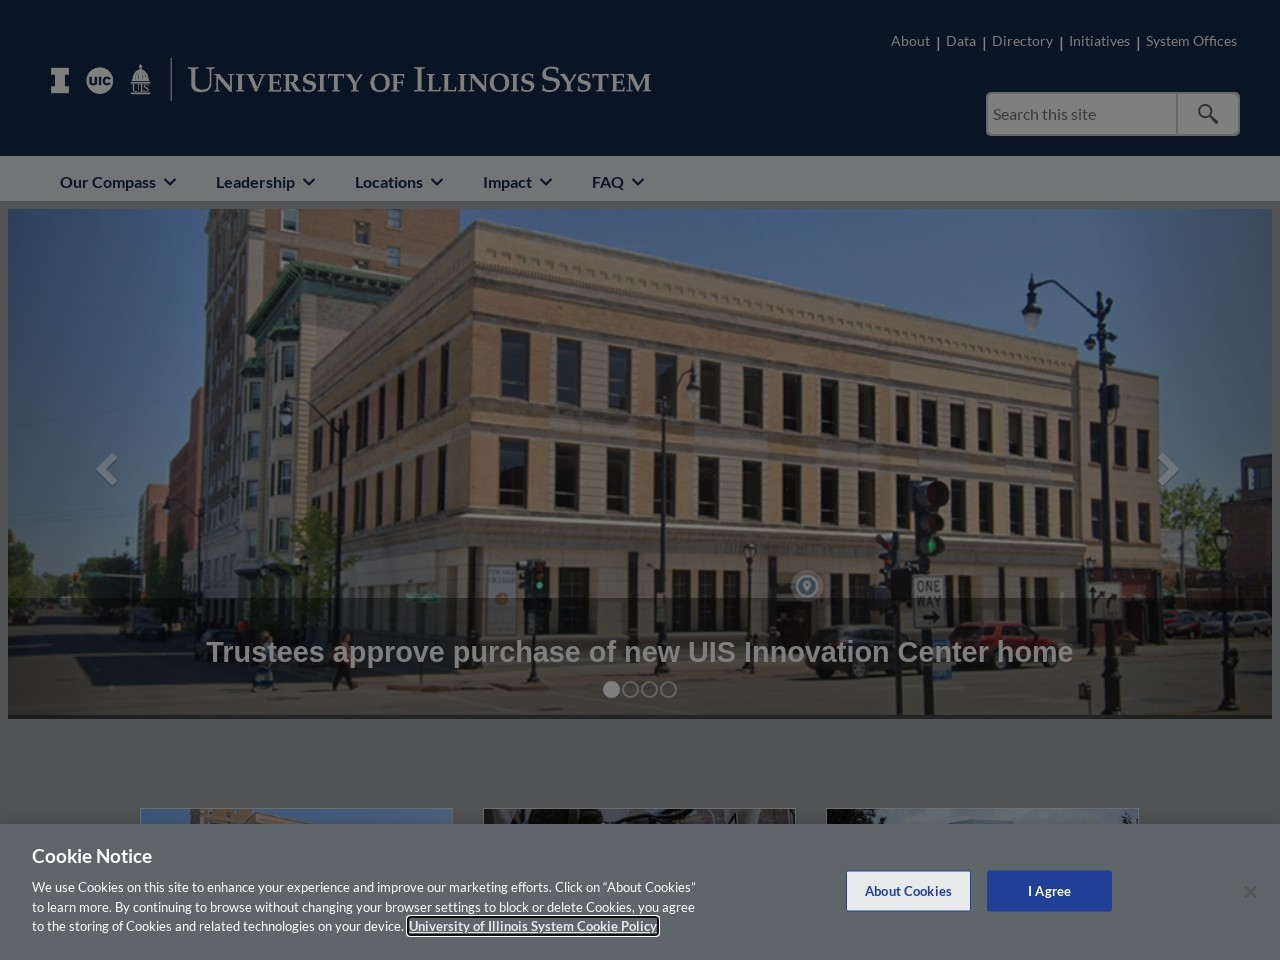 uillinois.edu